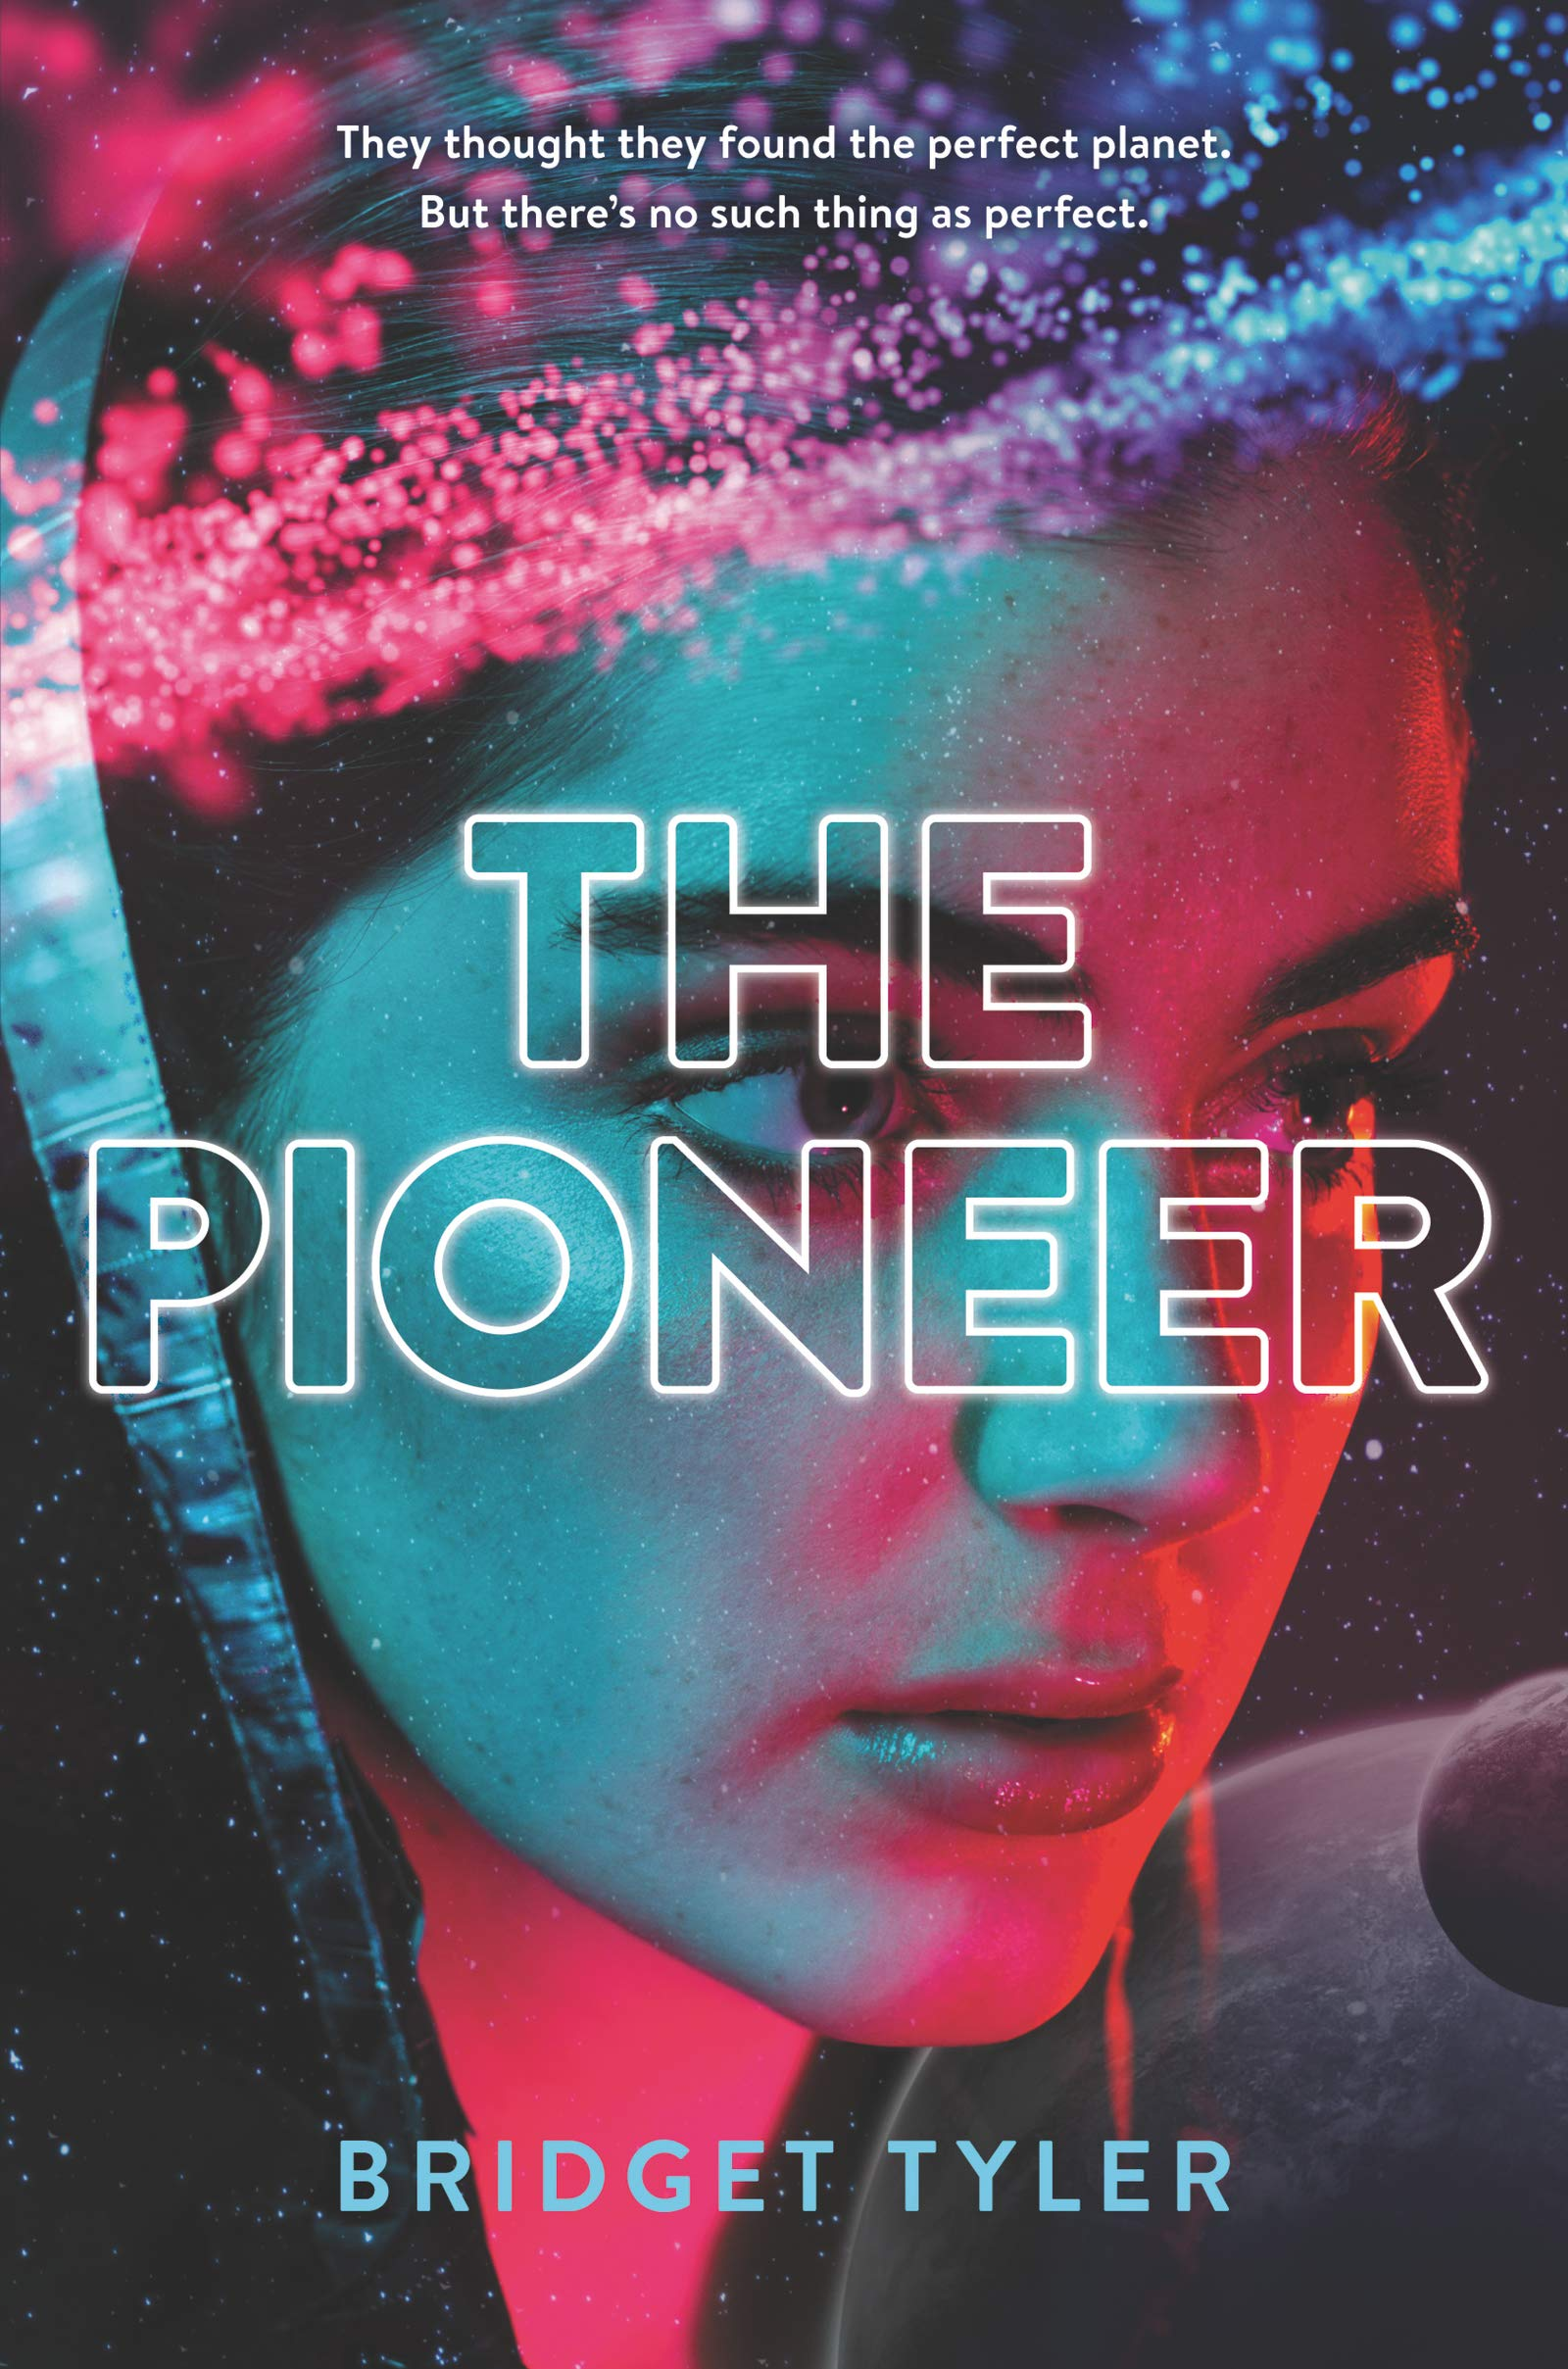 The pioneer / Bridget Tyler